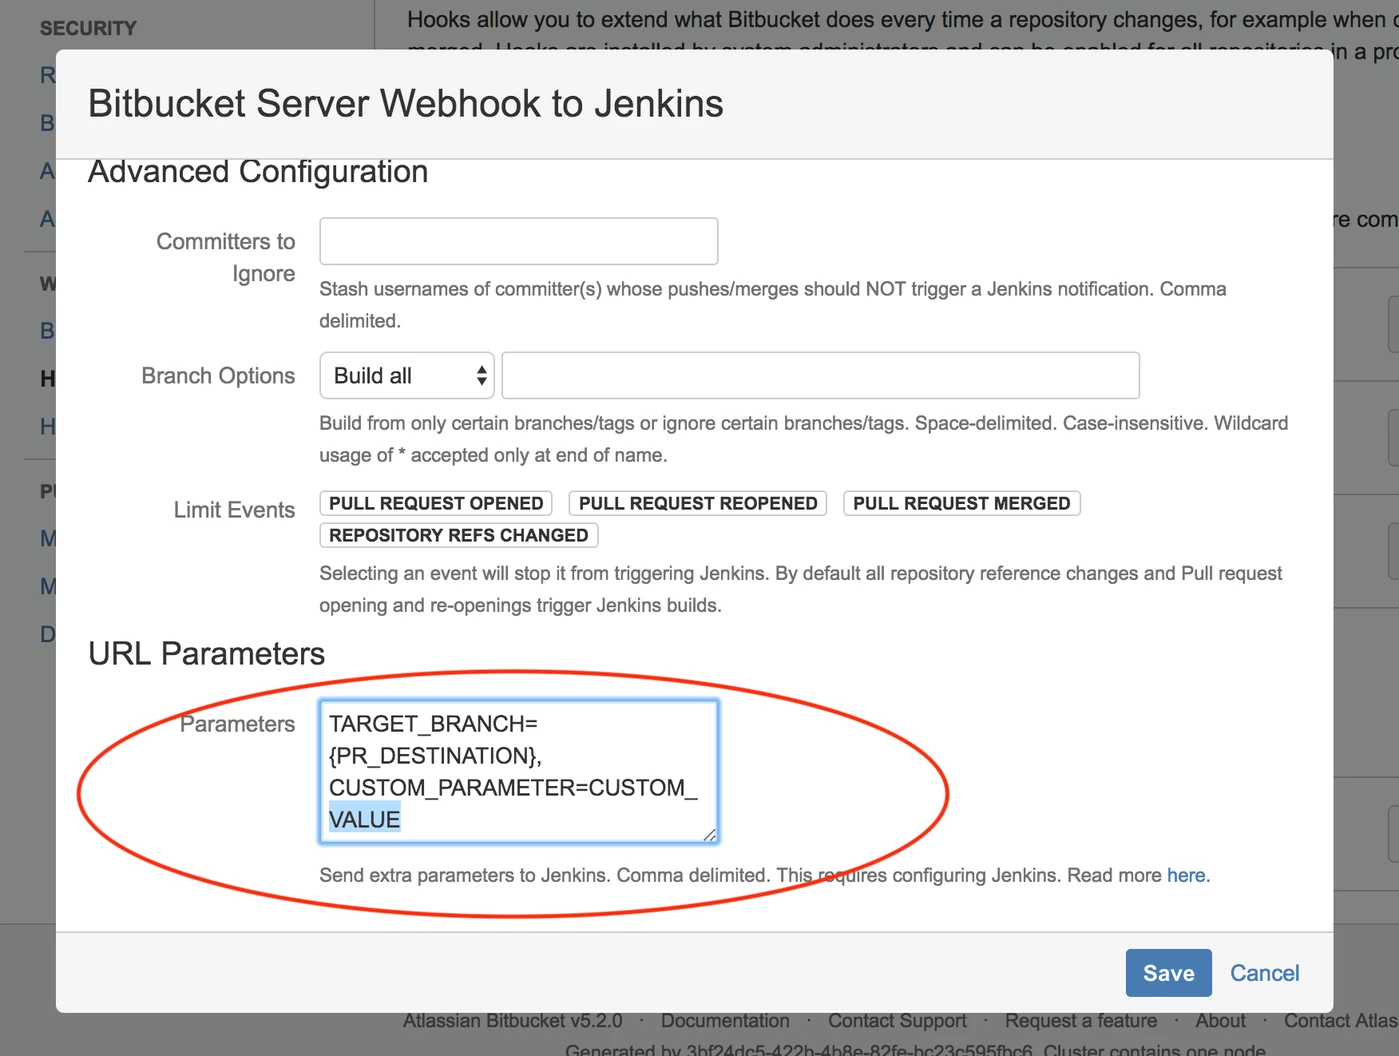 Webhook To Jenkins for Bitbucket 4 2 Support for URL Parameters